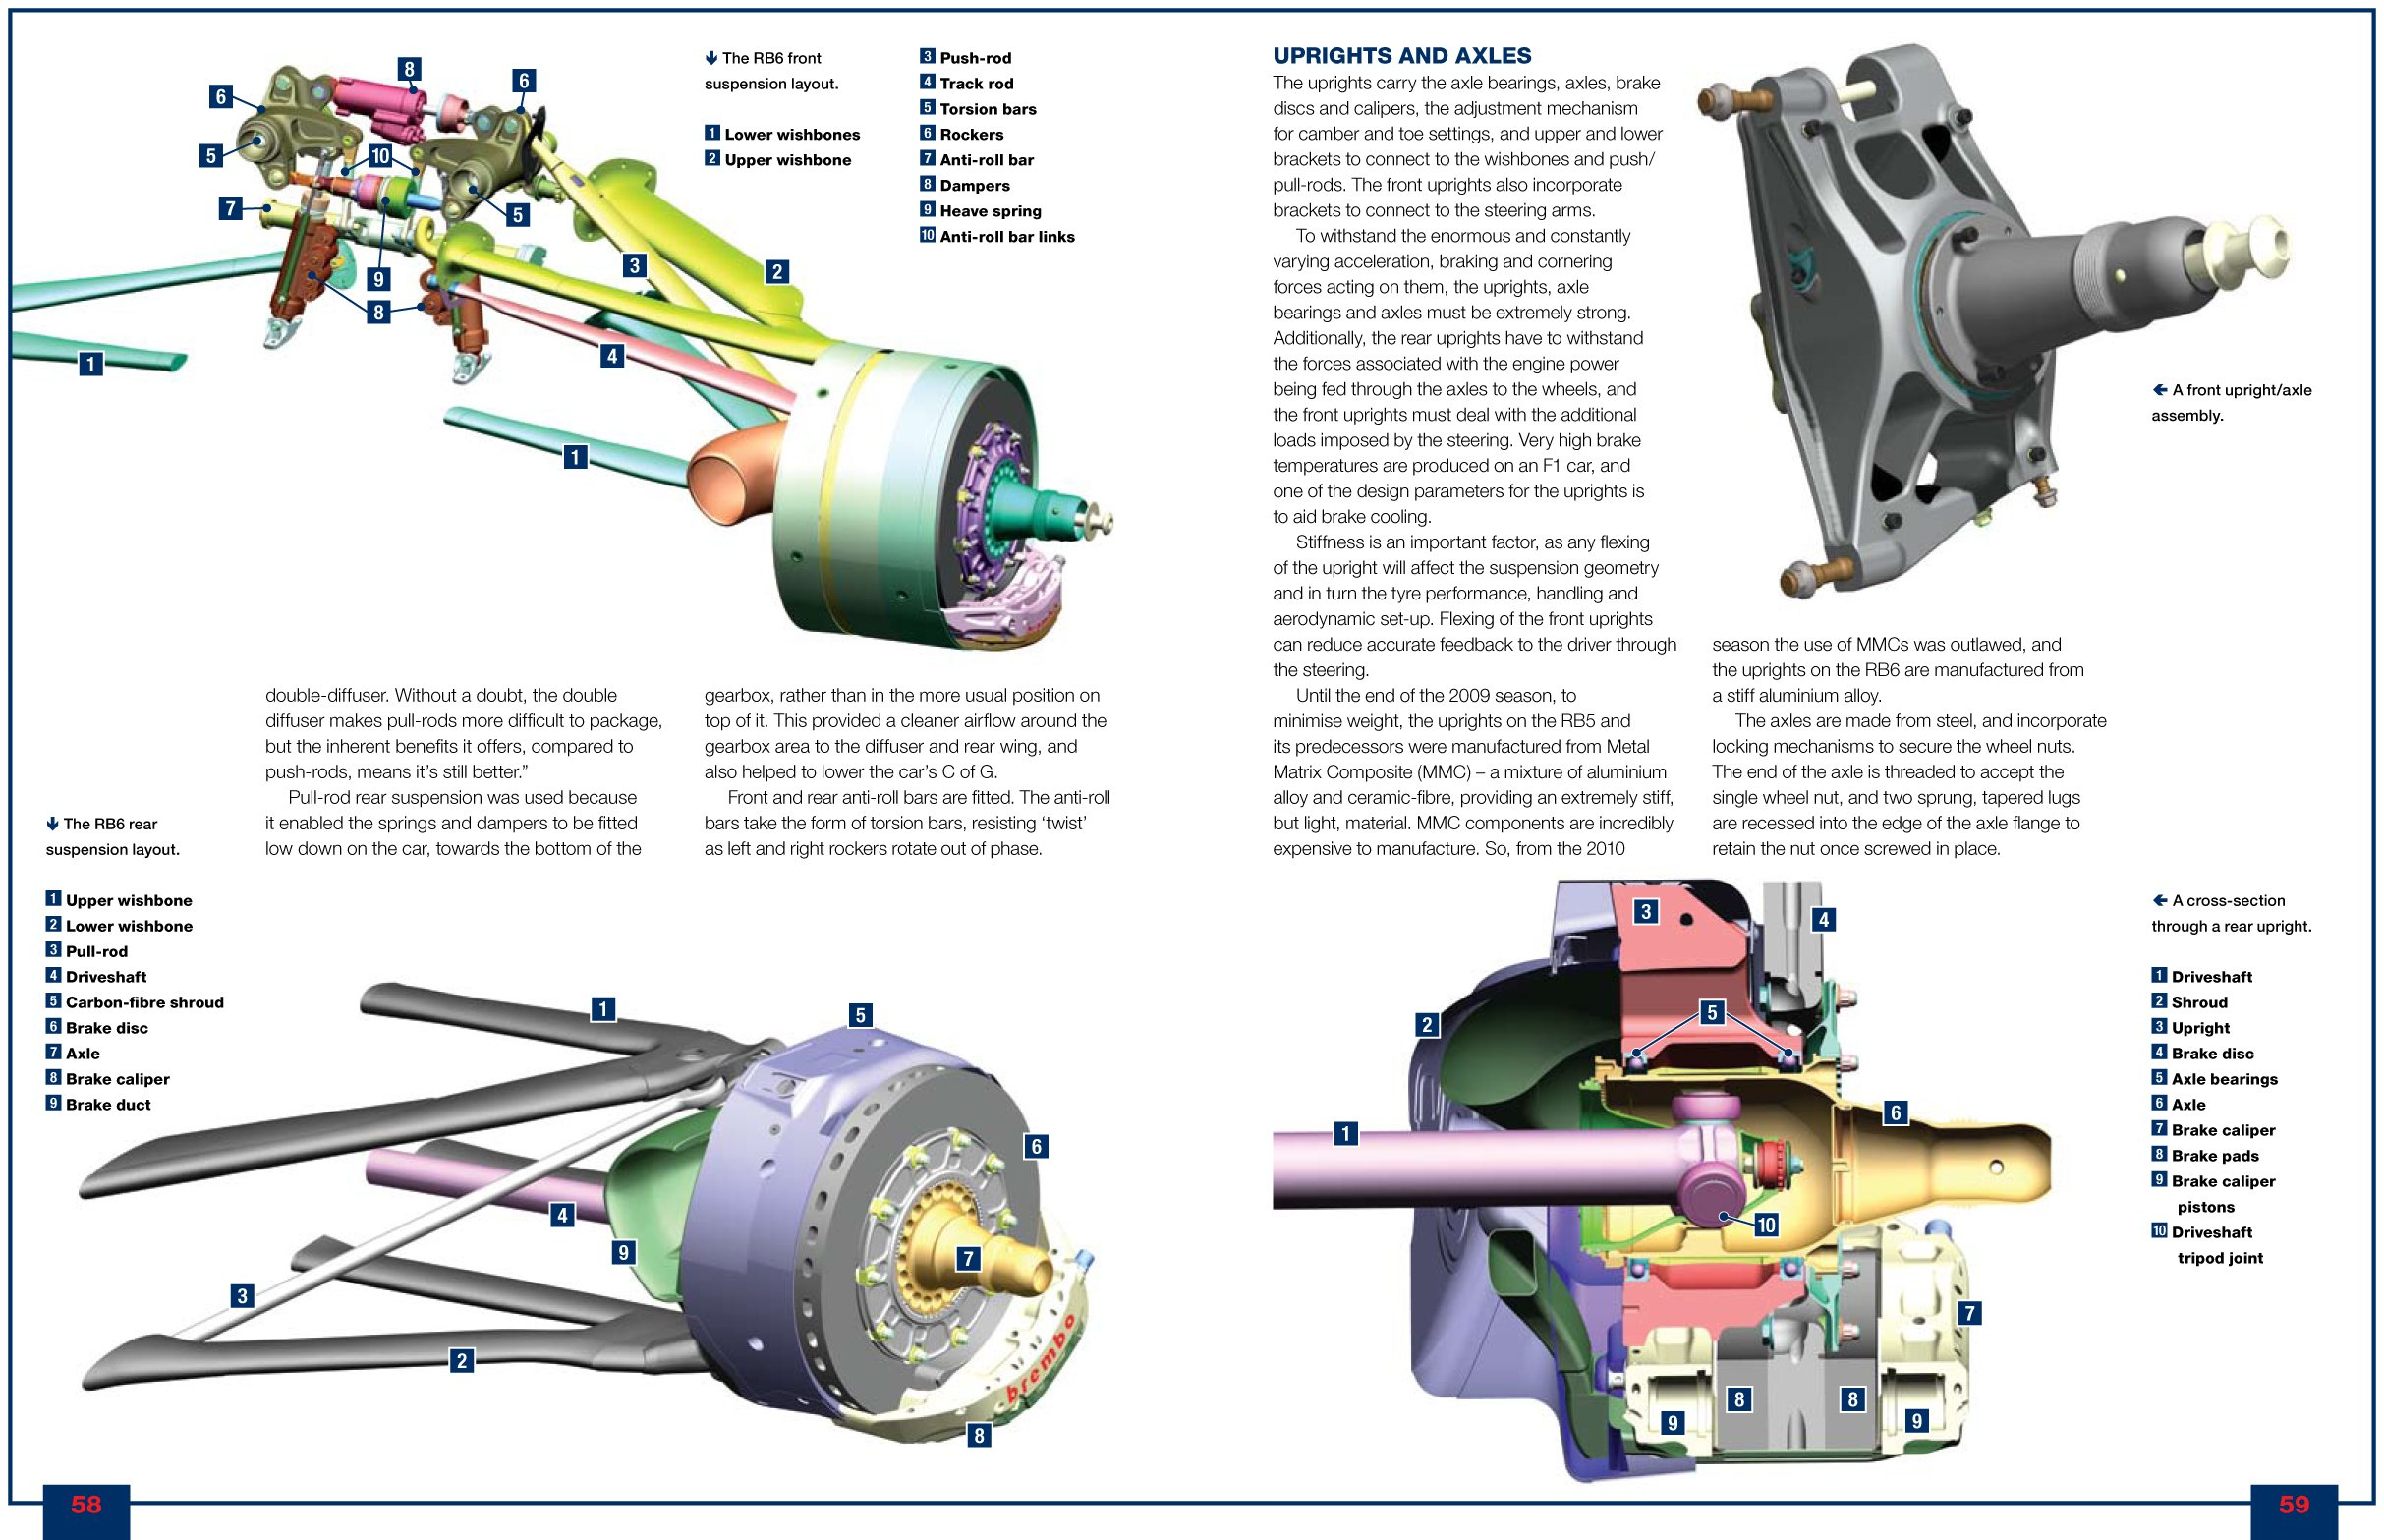 red bull racing f1 car manual: an insight into the technology, engineering,  maintenance and operation of the world championship-winning red bull